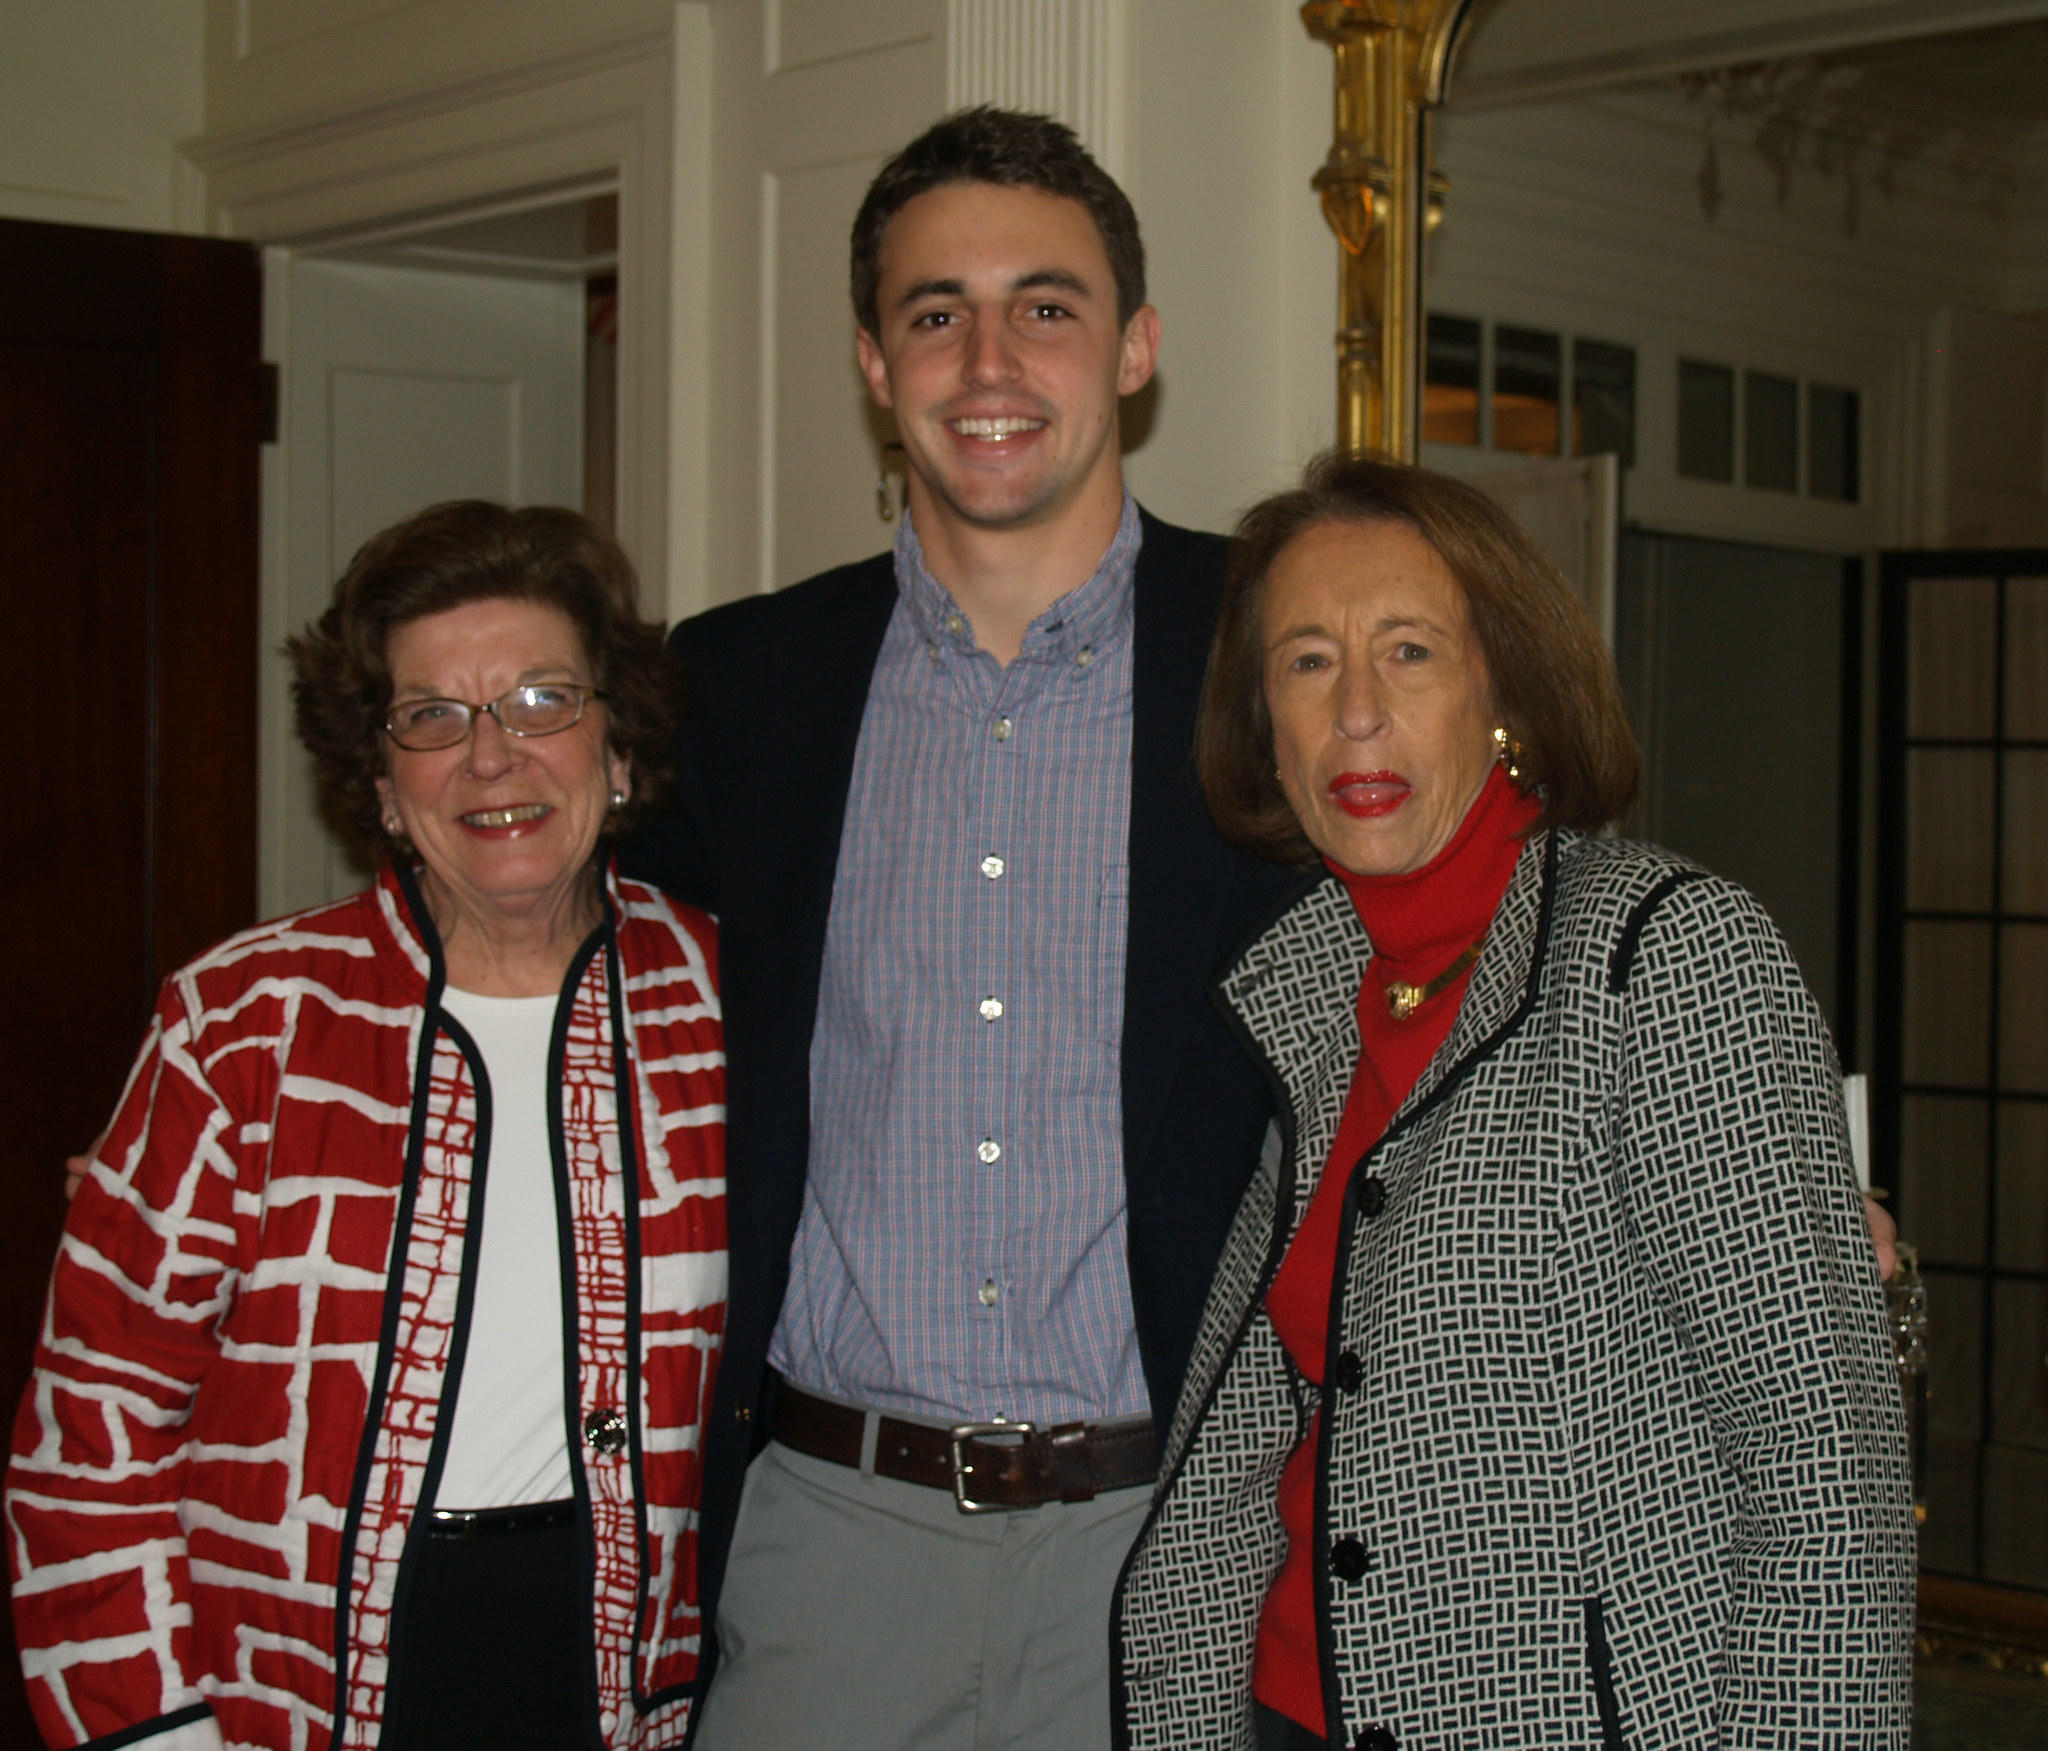 From left to right: Town and County Club President Dale Ryan of Hartford, Author Dylan Dethier, and Vice President Susan Scherer of Avon.